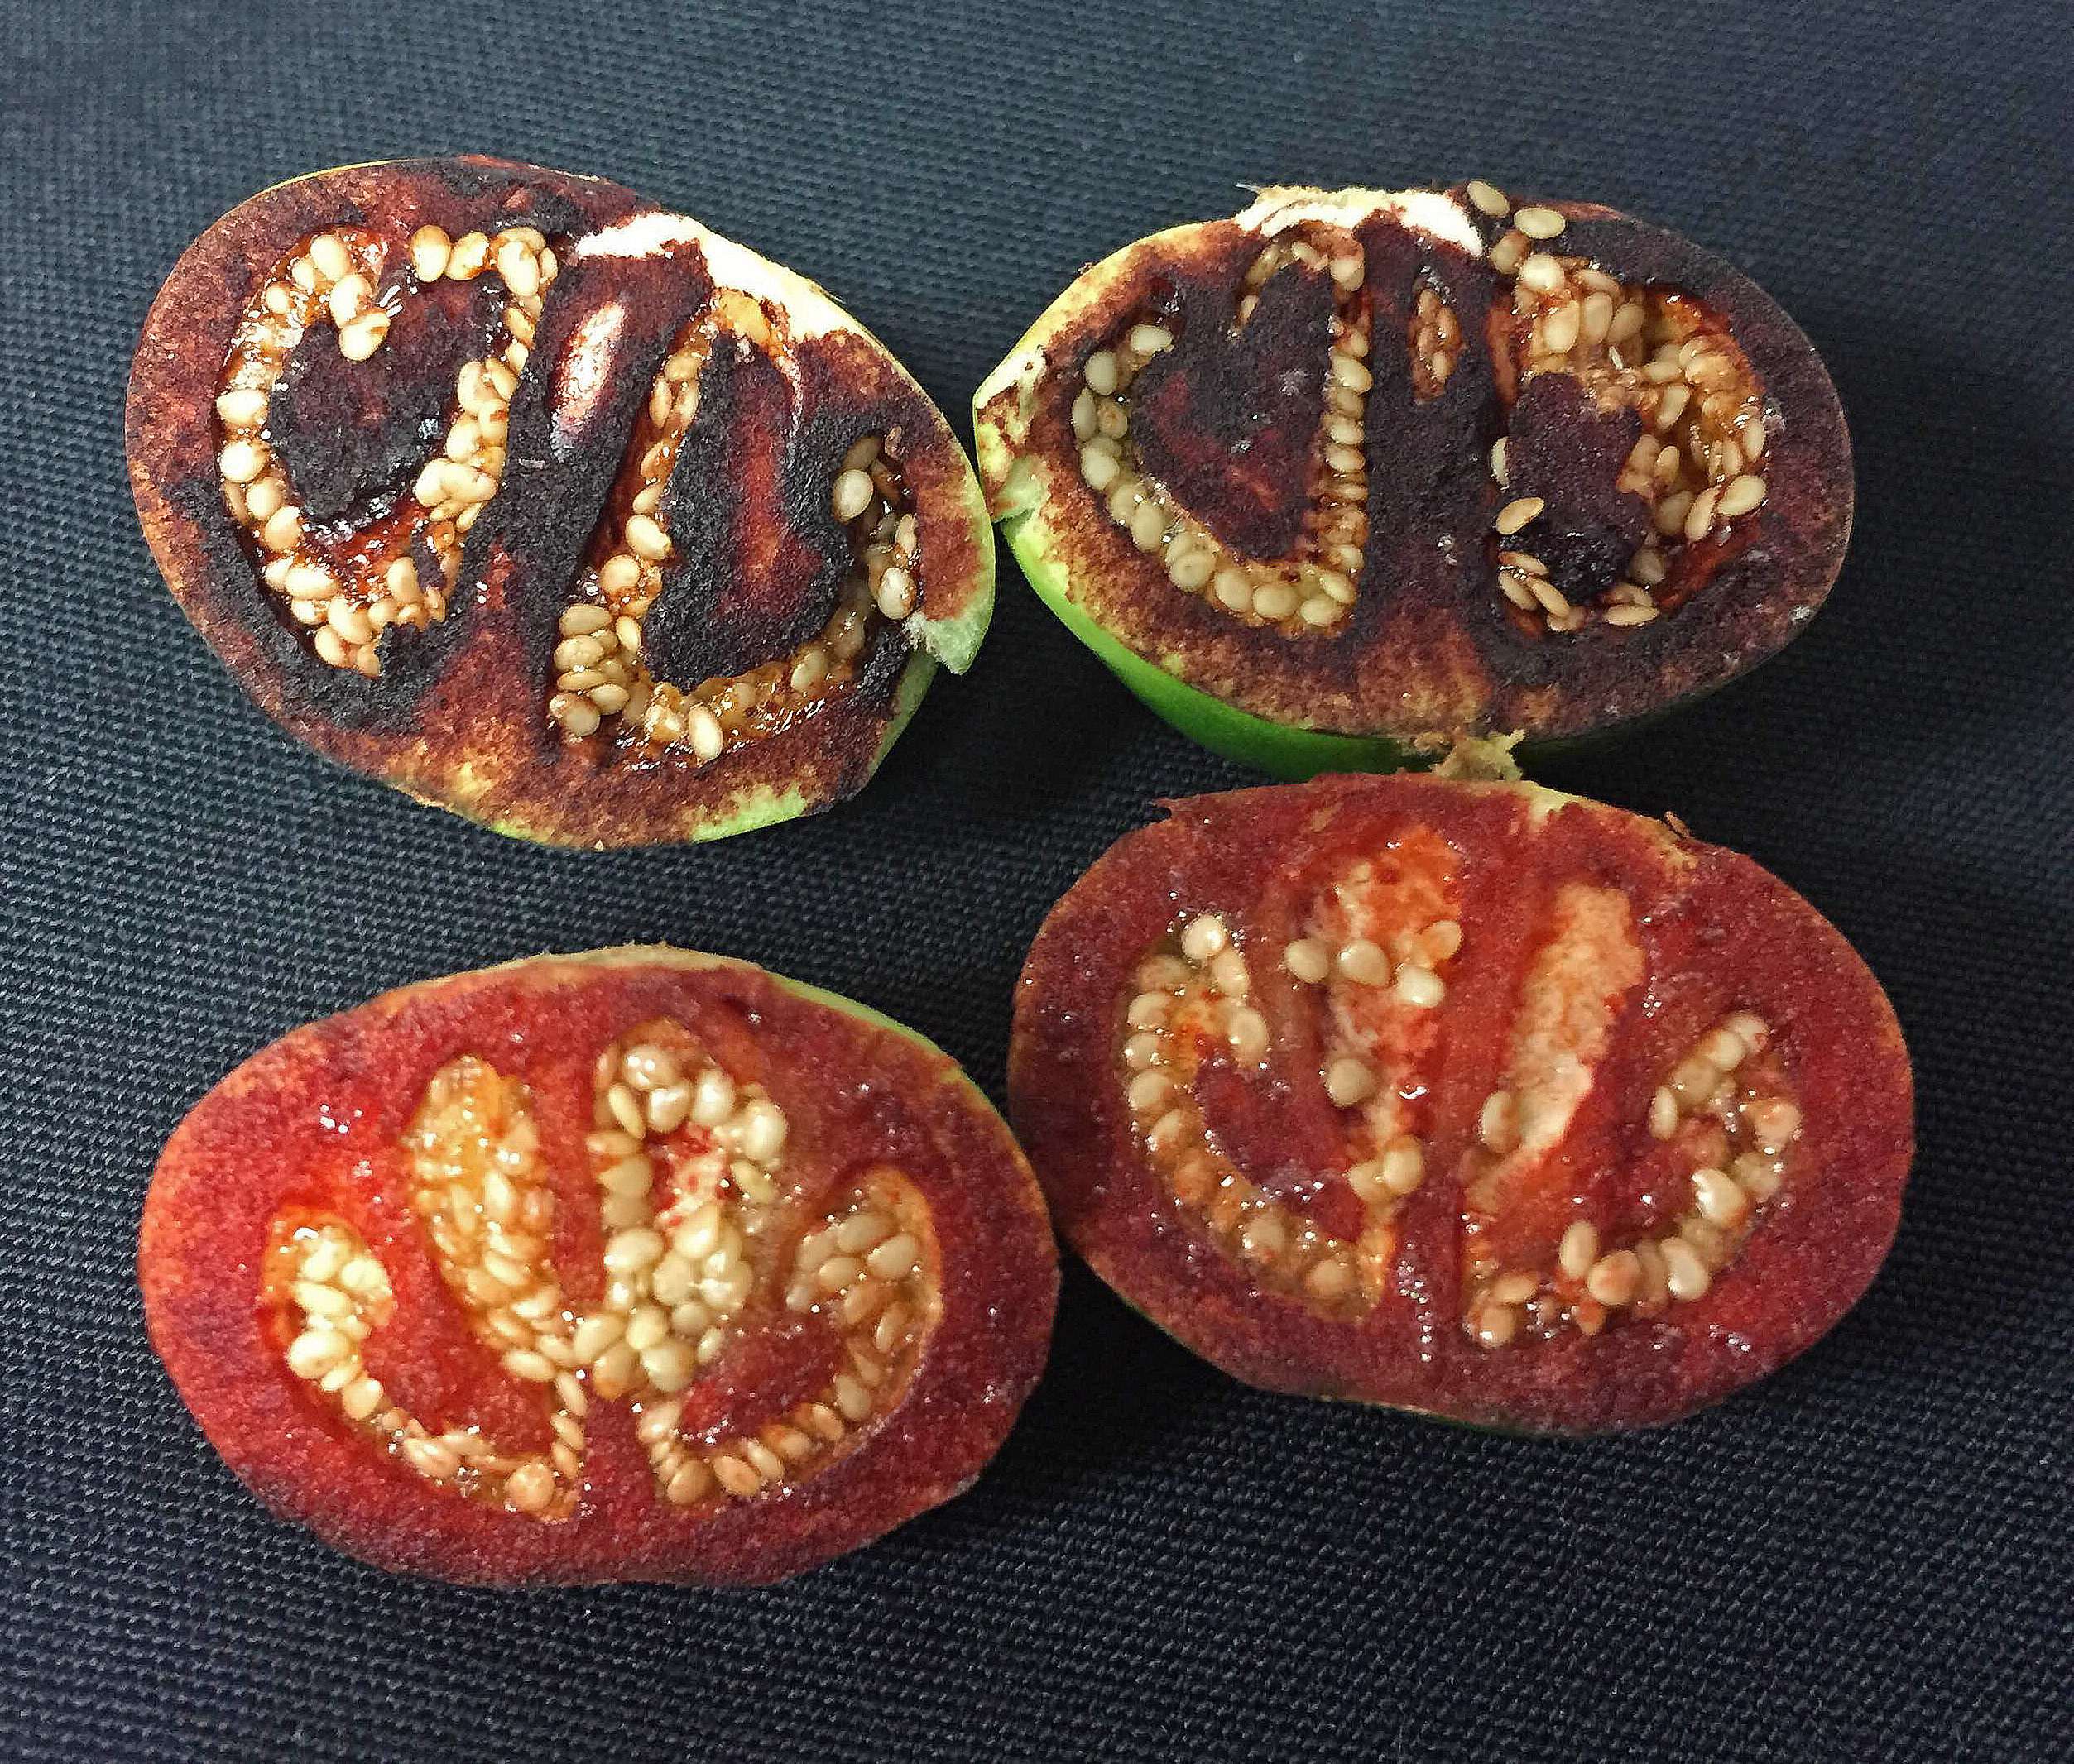 Blood red staining of recently-cut unripened fruits of Solanum ossicruentum. Photo by Jason T. Cantley.